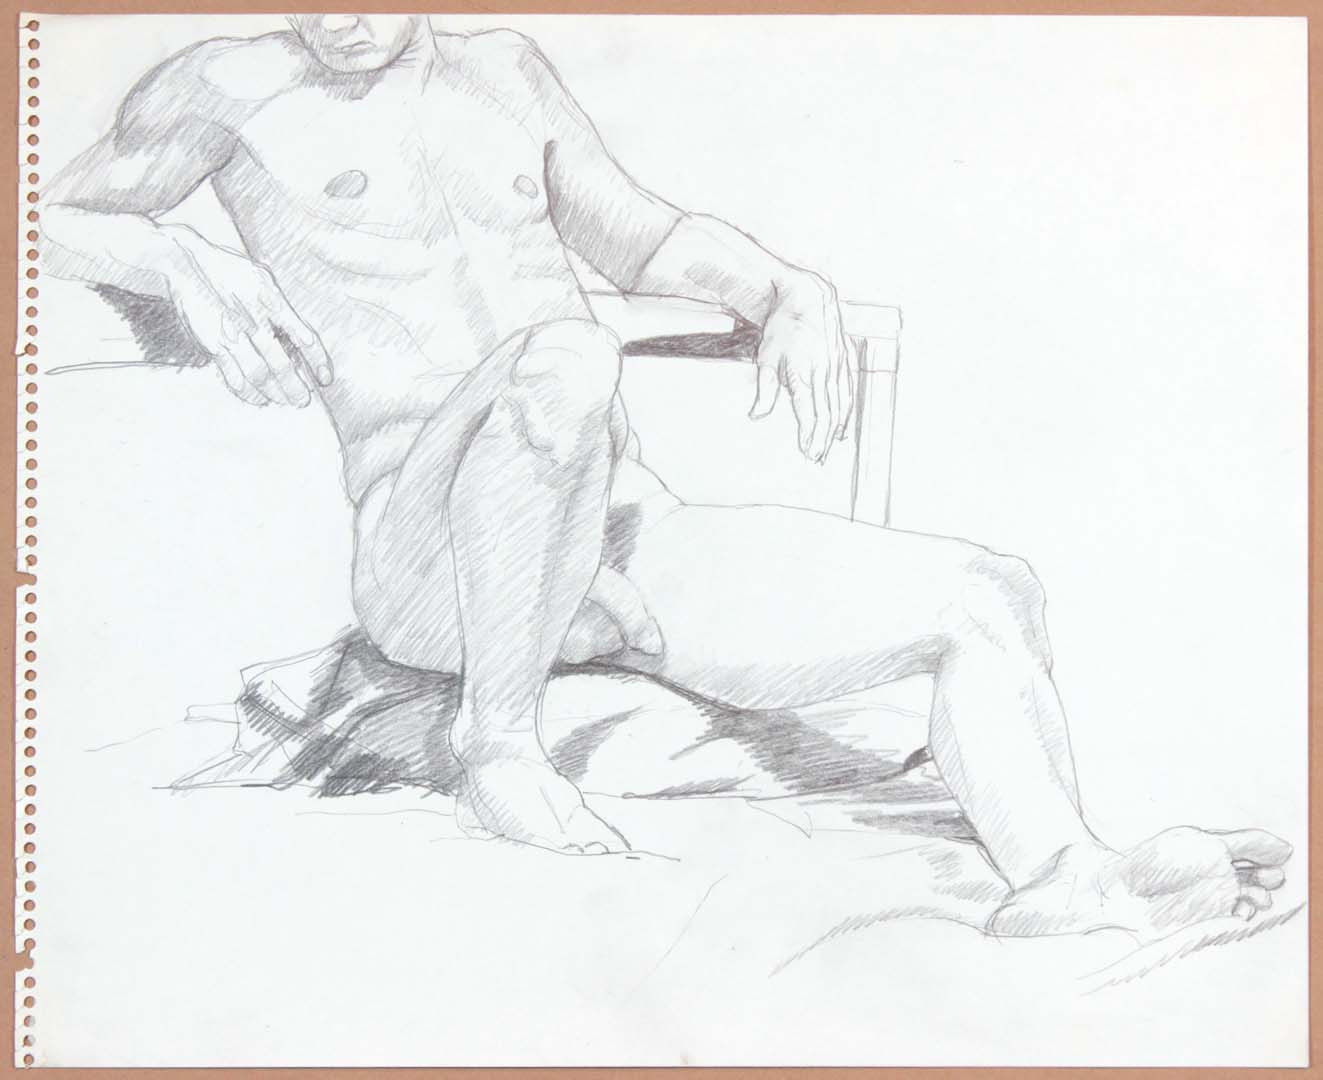 "Male Model Leaning Back with Leg Outstretched Pencil 17"" x 13.75"""